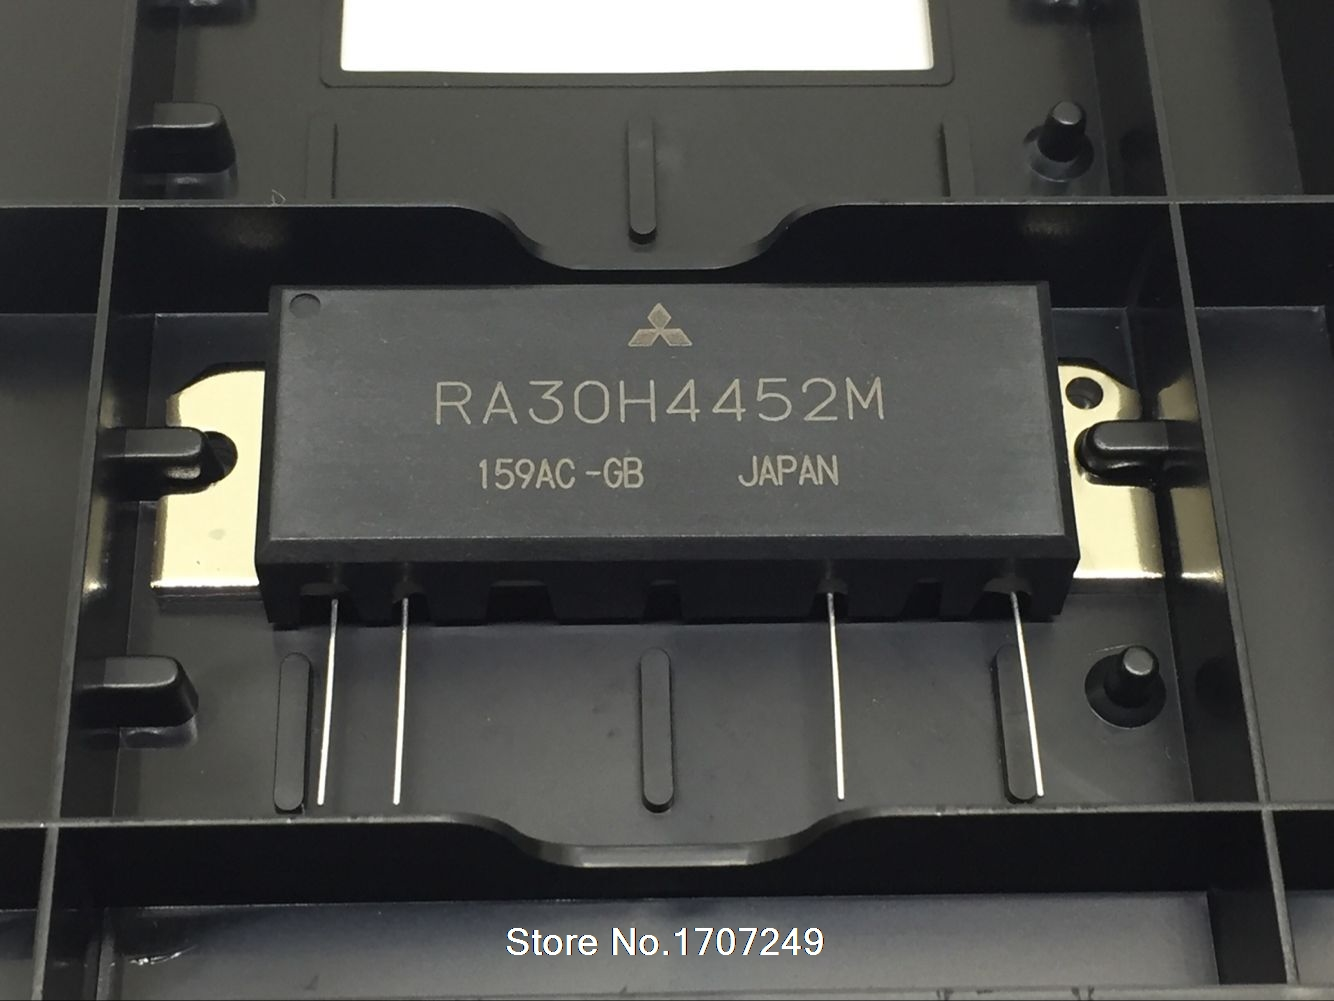 все цены на New original 10PCS RA30H4452M Power amplifier module   440-520MHz 30W 12.5V ( If you need more quantity, please contact us ) онлайн